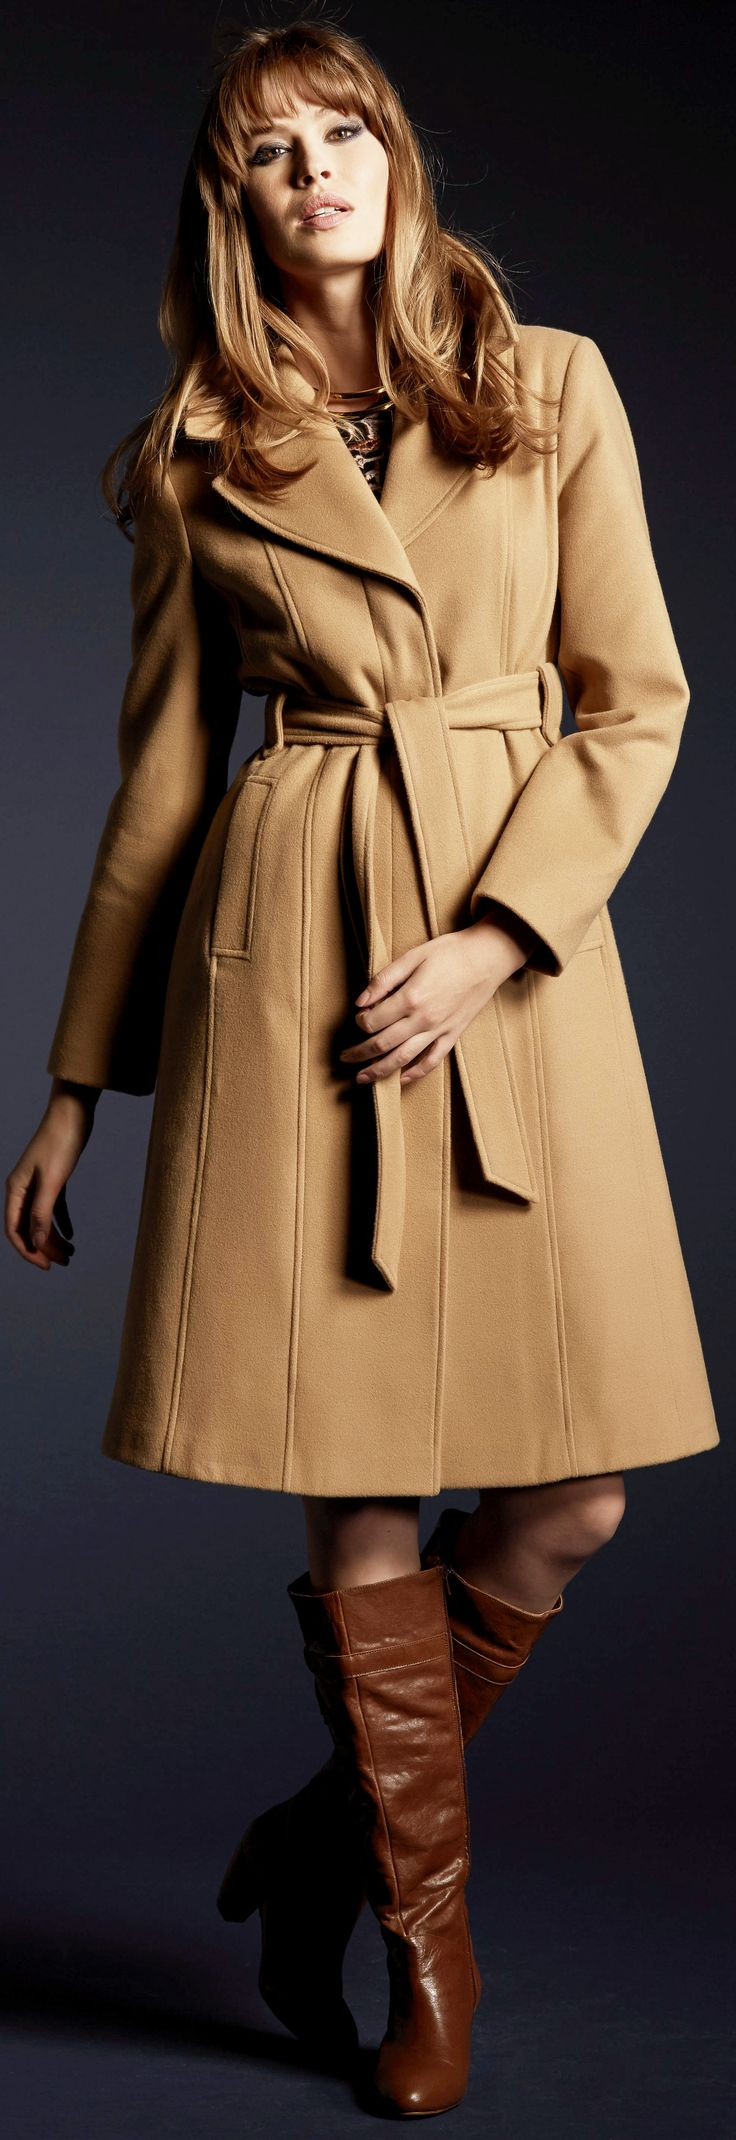 Oak Buff is one of the new Pantone colors for fall - read article - http://www.boomerinas.com/2015/06/26/10-pantone-fall-colors-for-autumn-2015-winter-2016/